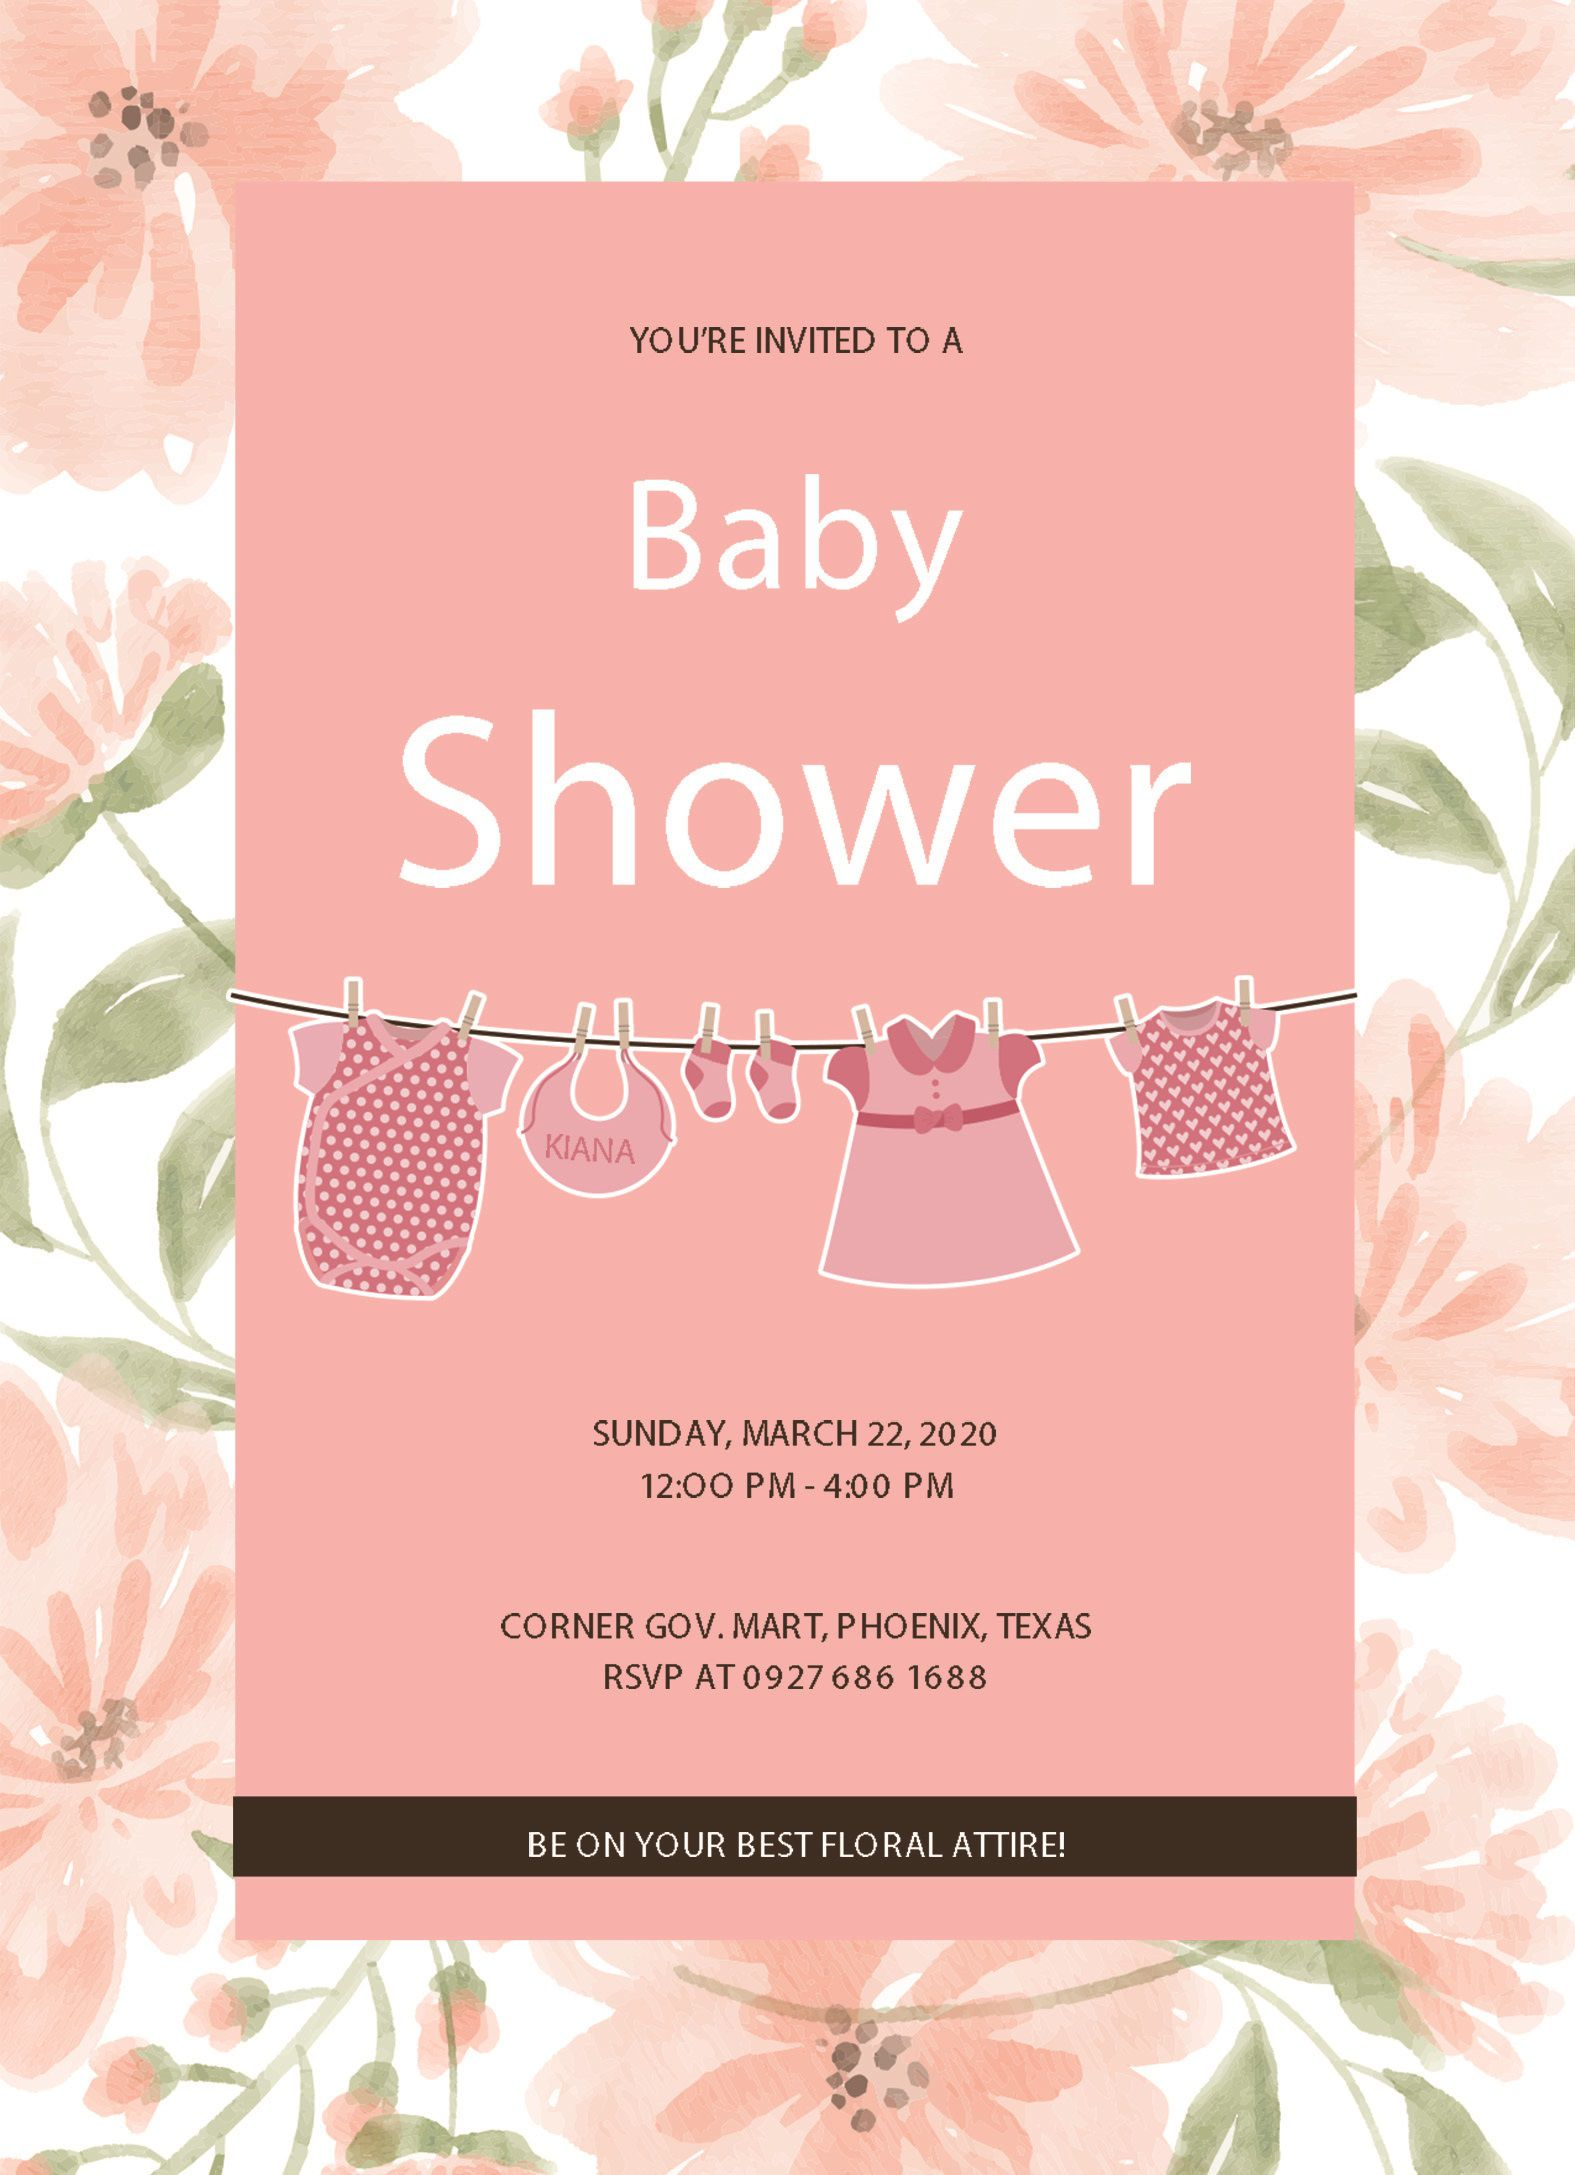 004 Breathtaking Baby Shower Card Template Free Download High Resolution  Indian InvitationFull